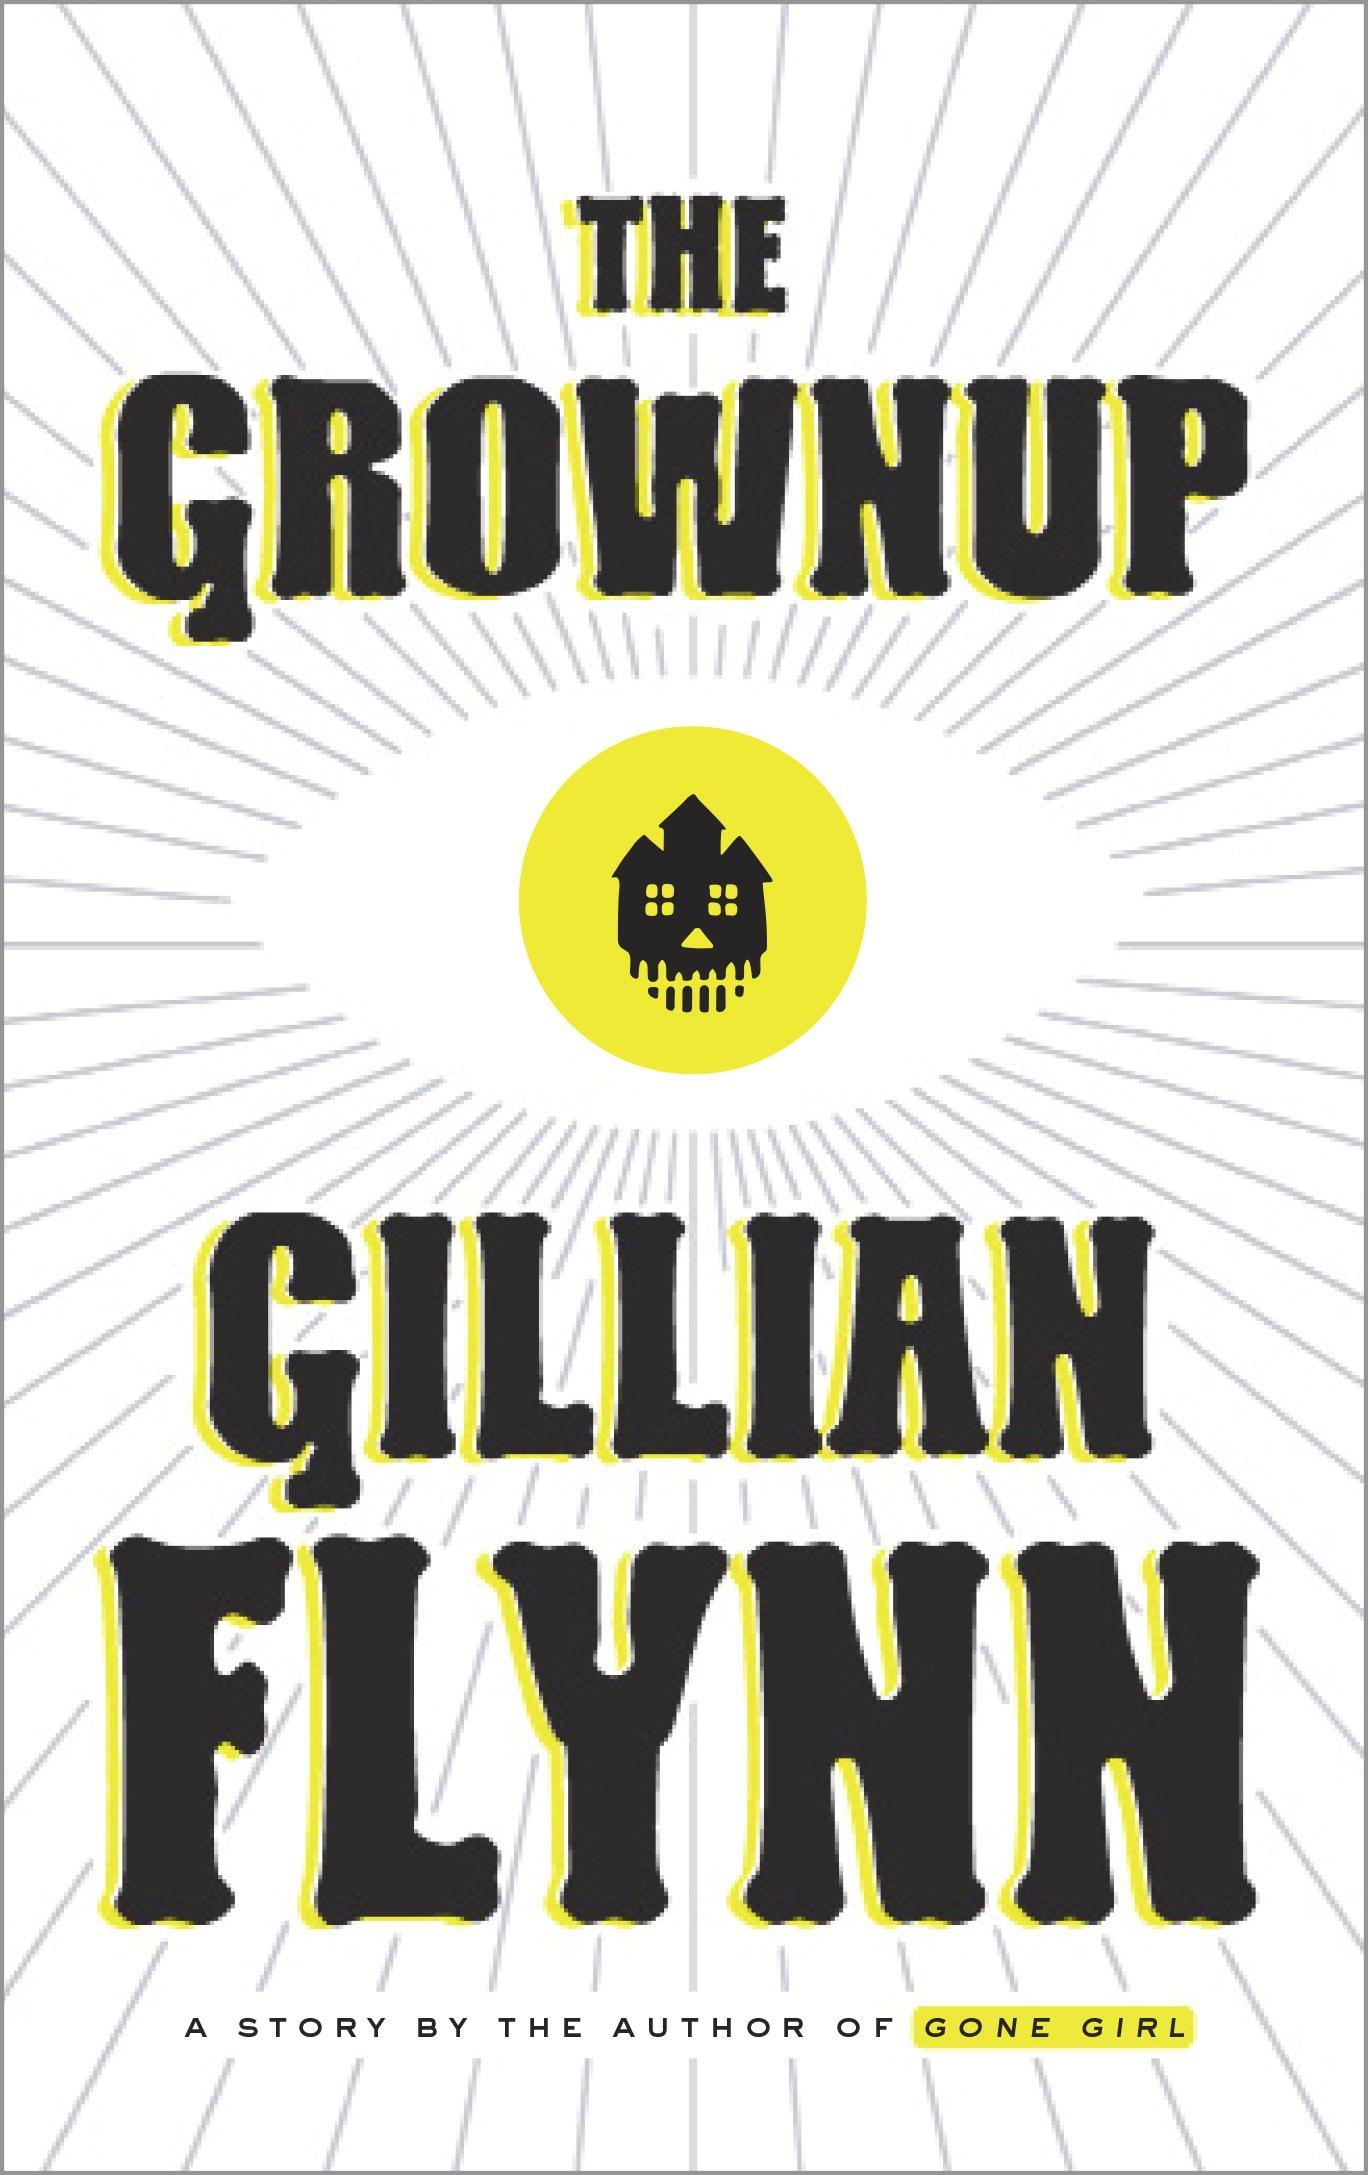 The Grownup Book Cover by Gillian Flynn